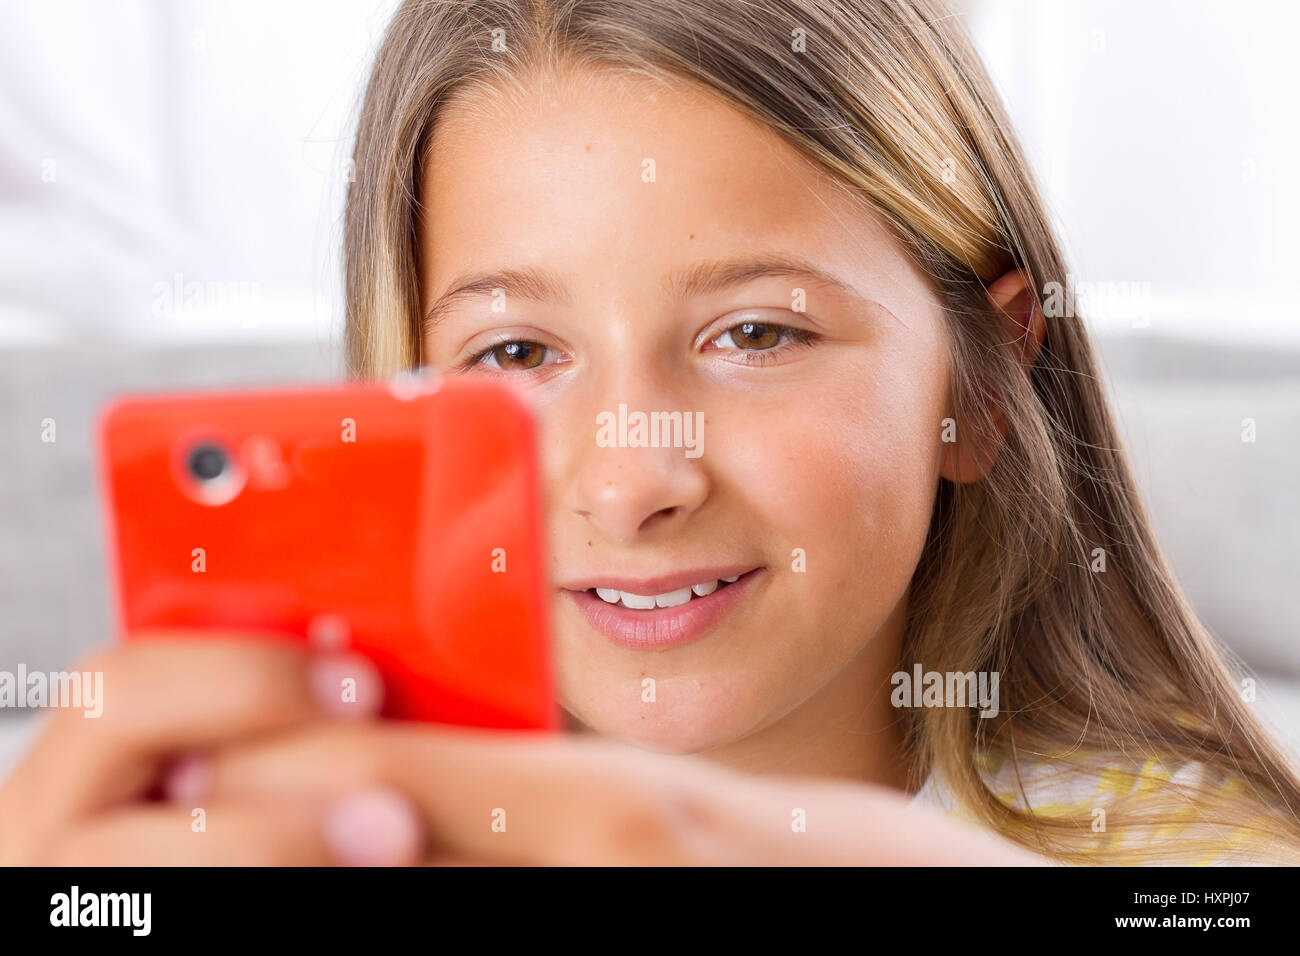 Youngster with smartphone, Jugendliche mit Smartphone Stock Photo